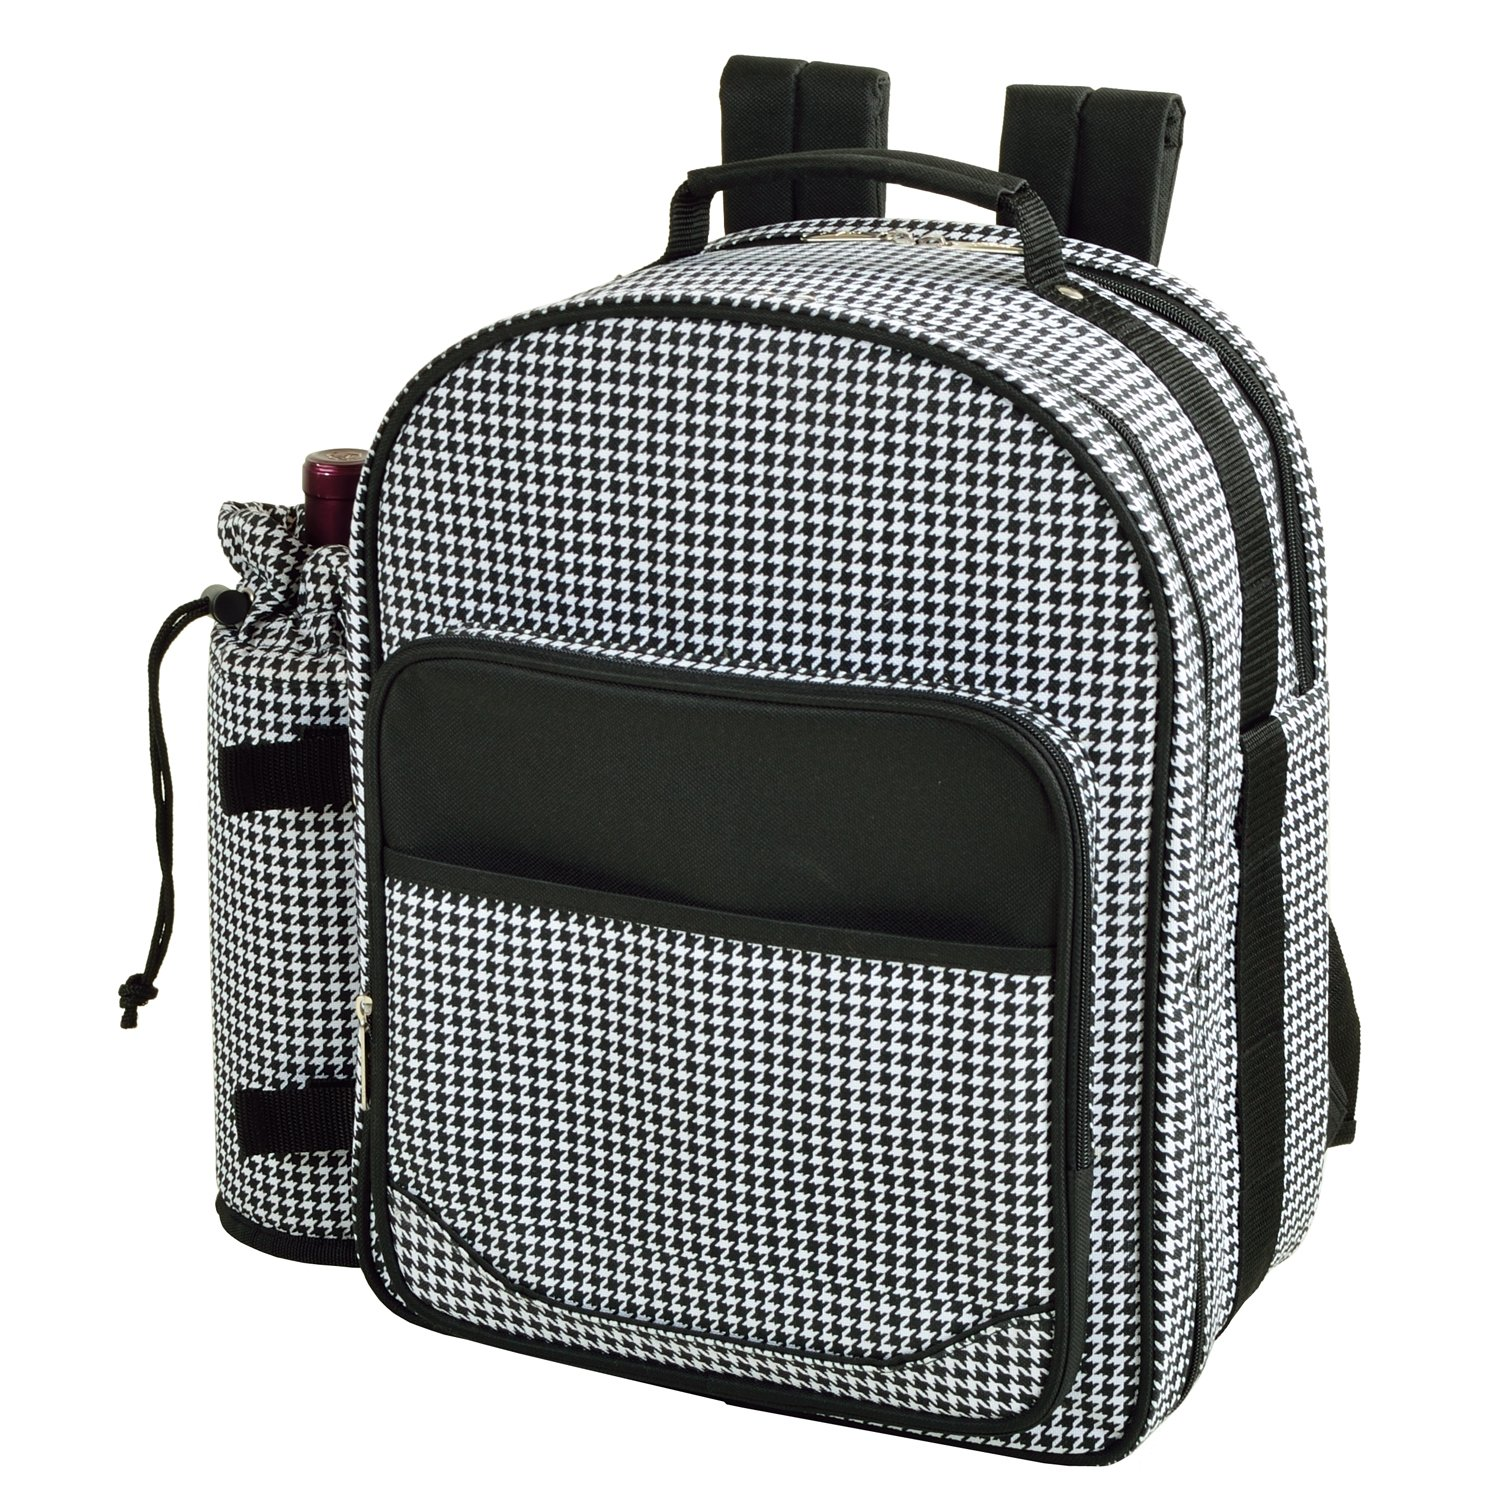 Picnic at Ascot – Deluxe Equipped 2 Person Picnic Backpack with Cooler Insulated Wine Holder – Houndstooth